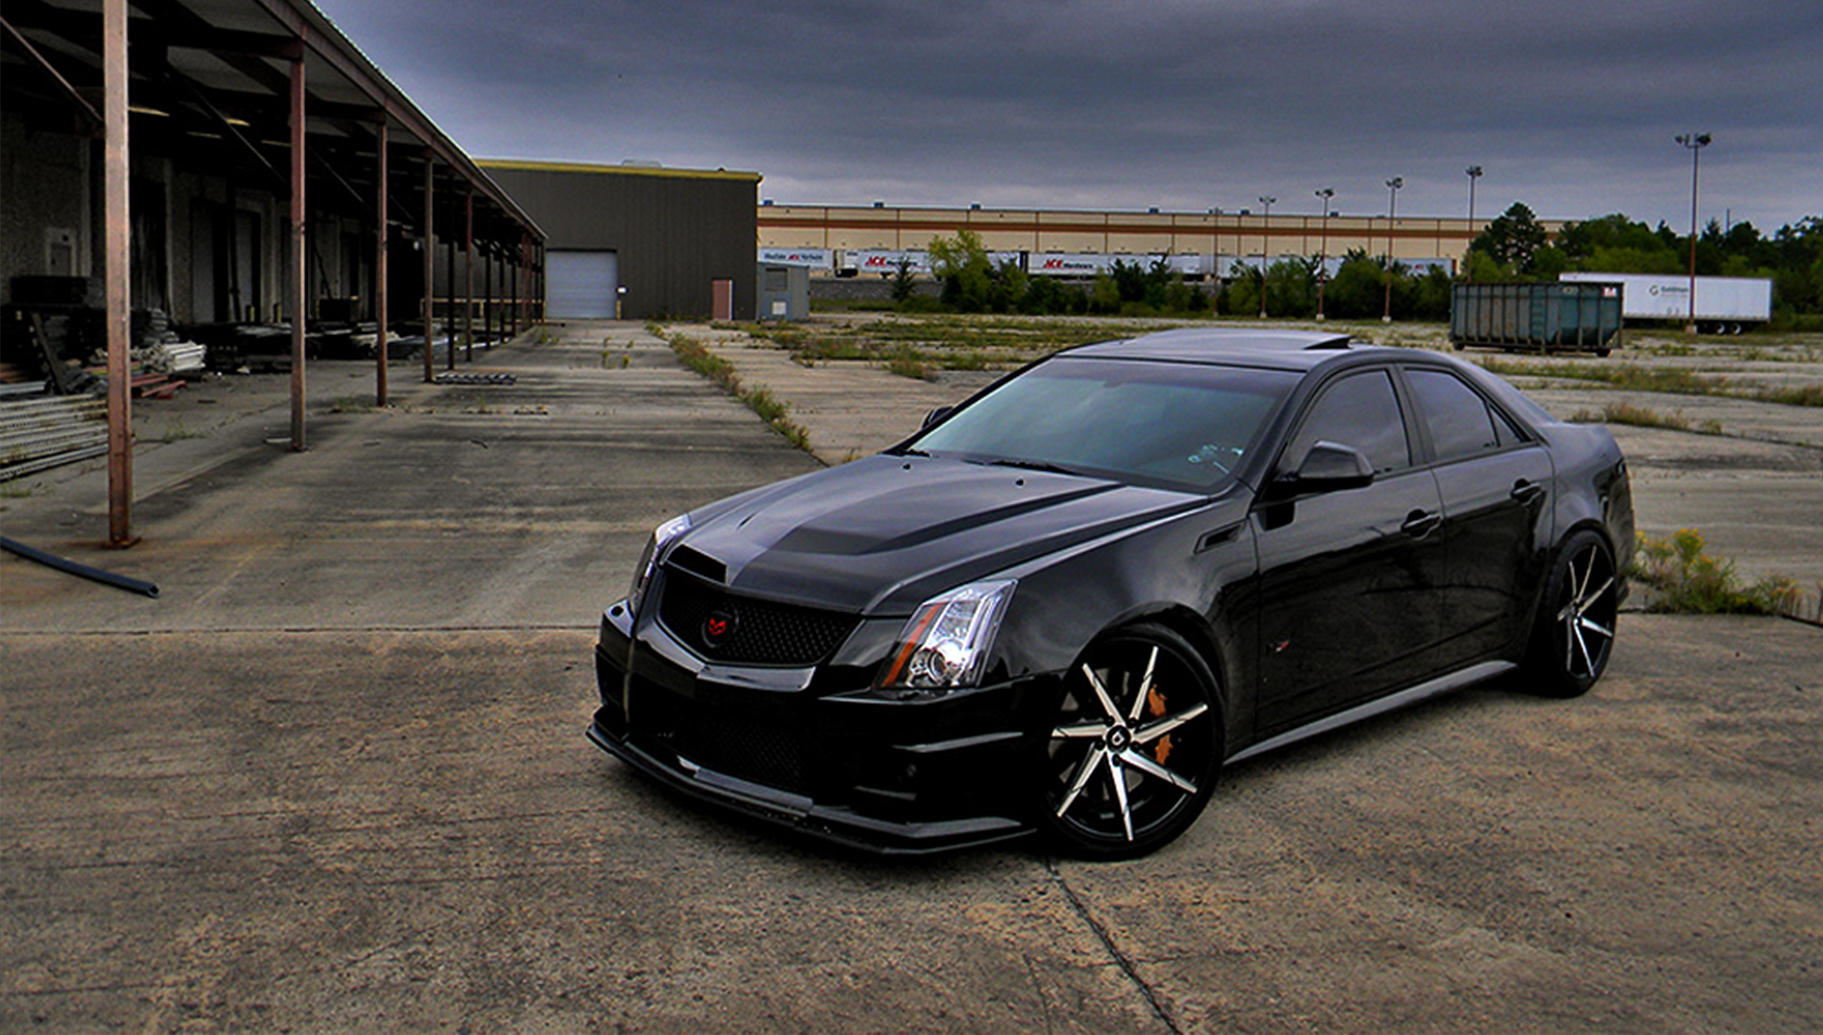 Cadillac Cts V Supercharged Black Raven Recaros Carbon Package Luxury moreover  likewise Converted Mg as well Lexus Gs F Driven X W besides Cadillac Xlr Hardtop Convertible For Sale X. on 2016 cadillac cts v sedan